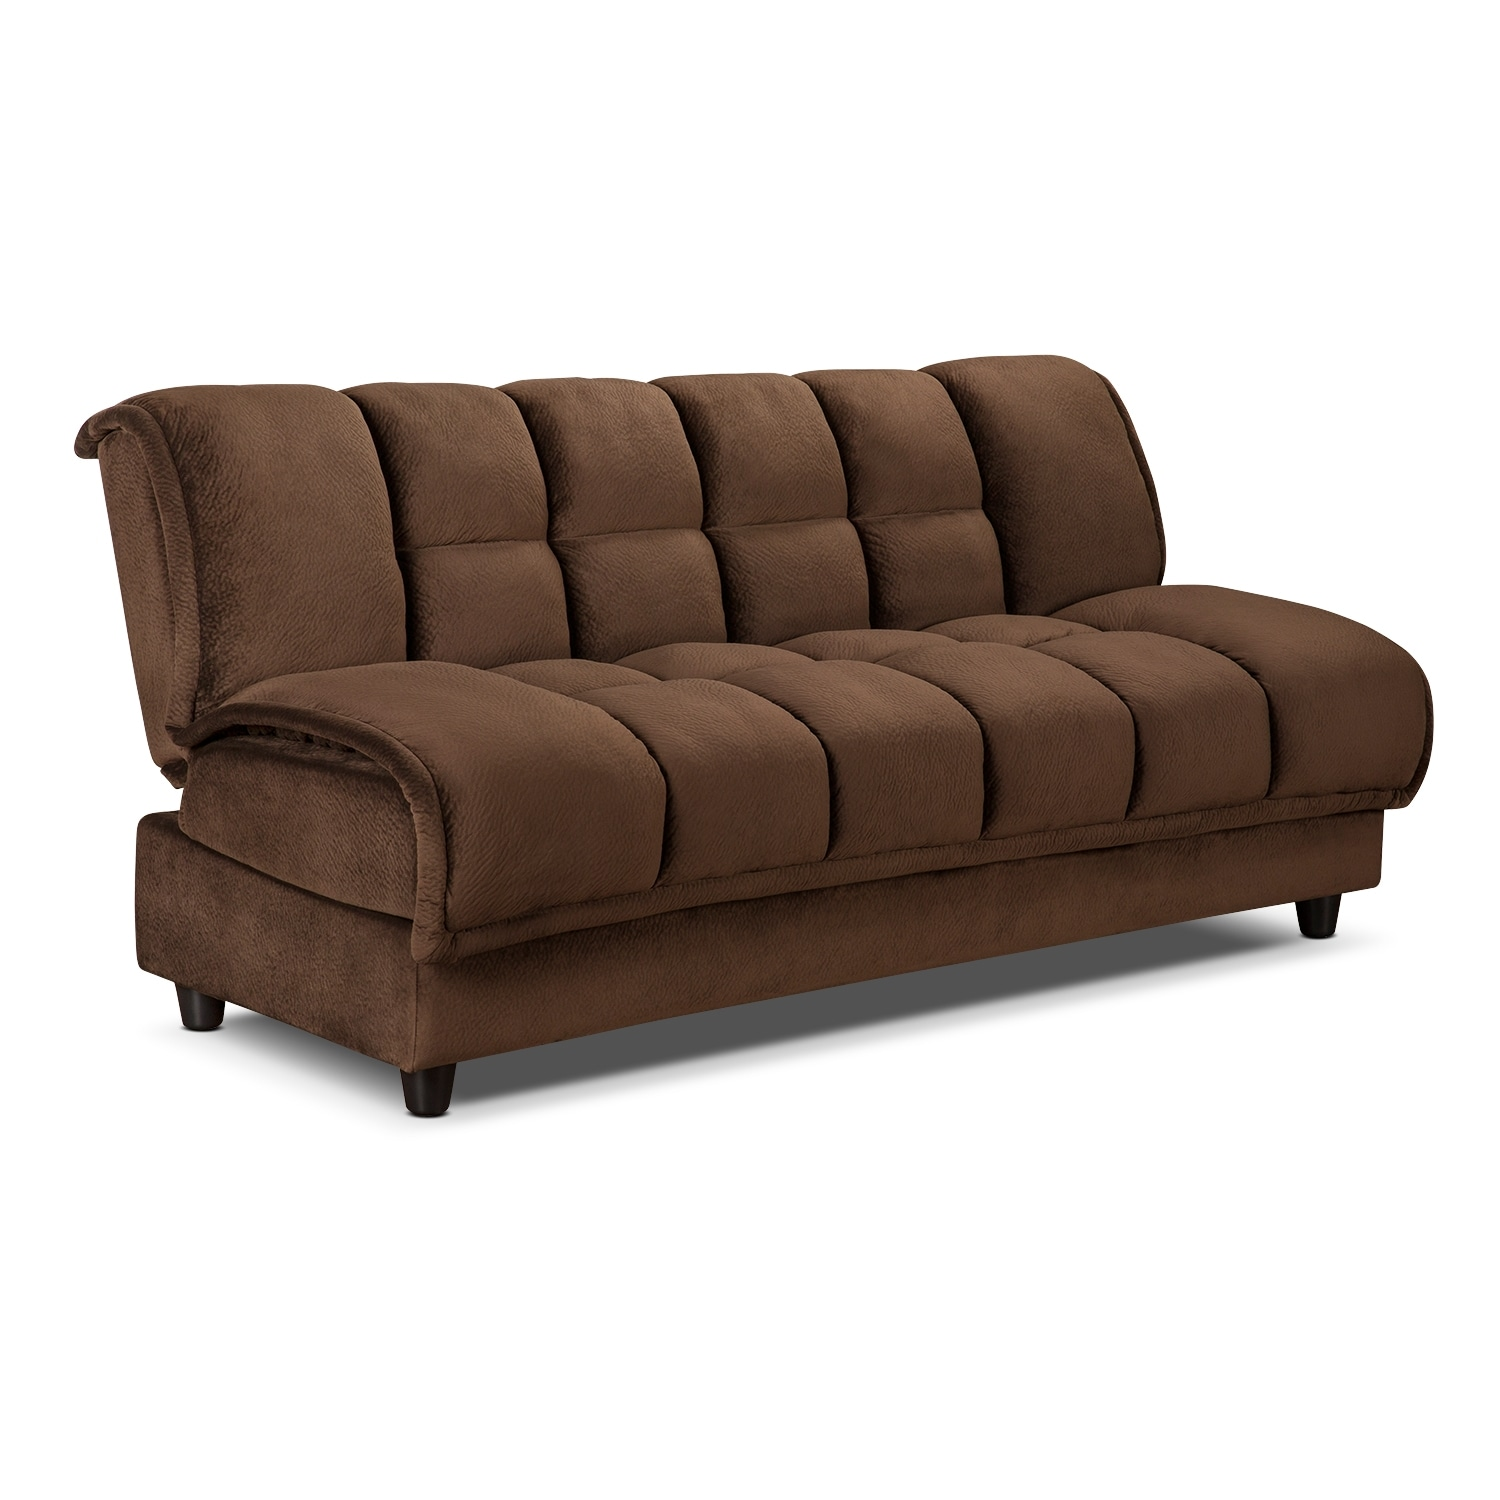 Darrow futon sofa bed with storage for Sofa bed chair